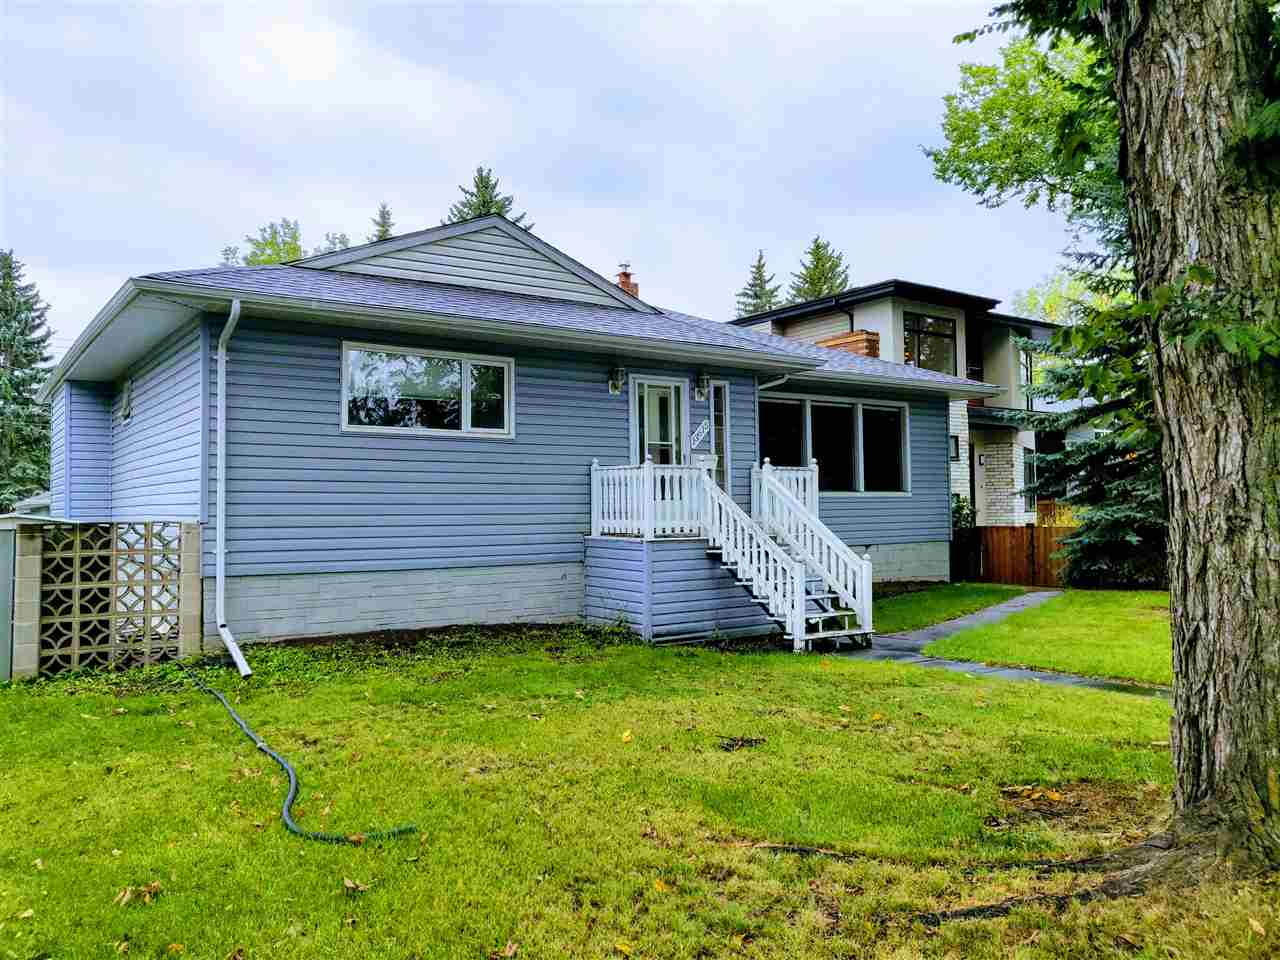 Looking for a character home in Old Glenora on the LRT line minutes to Down Town & UofA? Over 1500 sqft. bungalow is waiting for your personal touch. Over 130k in renovations in the last 5 years! Steps to Glenora Elementary school & Westminster JR & jog/bike to River Valley.  Large kitchen and dining room with access to huge raised deck. Some of the recent renovations include new appliances & main floor washer/dryer, new shingles and eavestroughs around the house and garage, New garage door, New plumbing throughout the home including a back flow valve. The foundation was repaired around all house and exterior weeping tile system and new sump pump. All basement walls where redone with interior repairs to concrete with new insulation and dry wall. New flooring & ceiling in basement. Brand New bathroom development. Newer high efficiency furnace, newer exterior doors, vinyl windows, gas fireplace, gas BBQ hookup on balcony. Long term Infill potential!